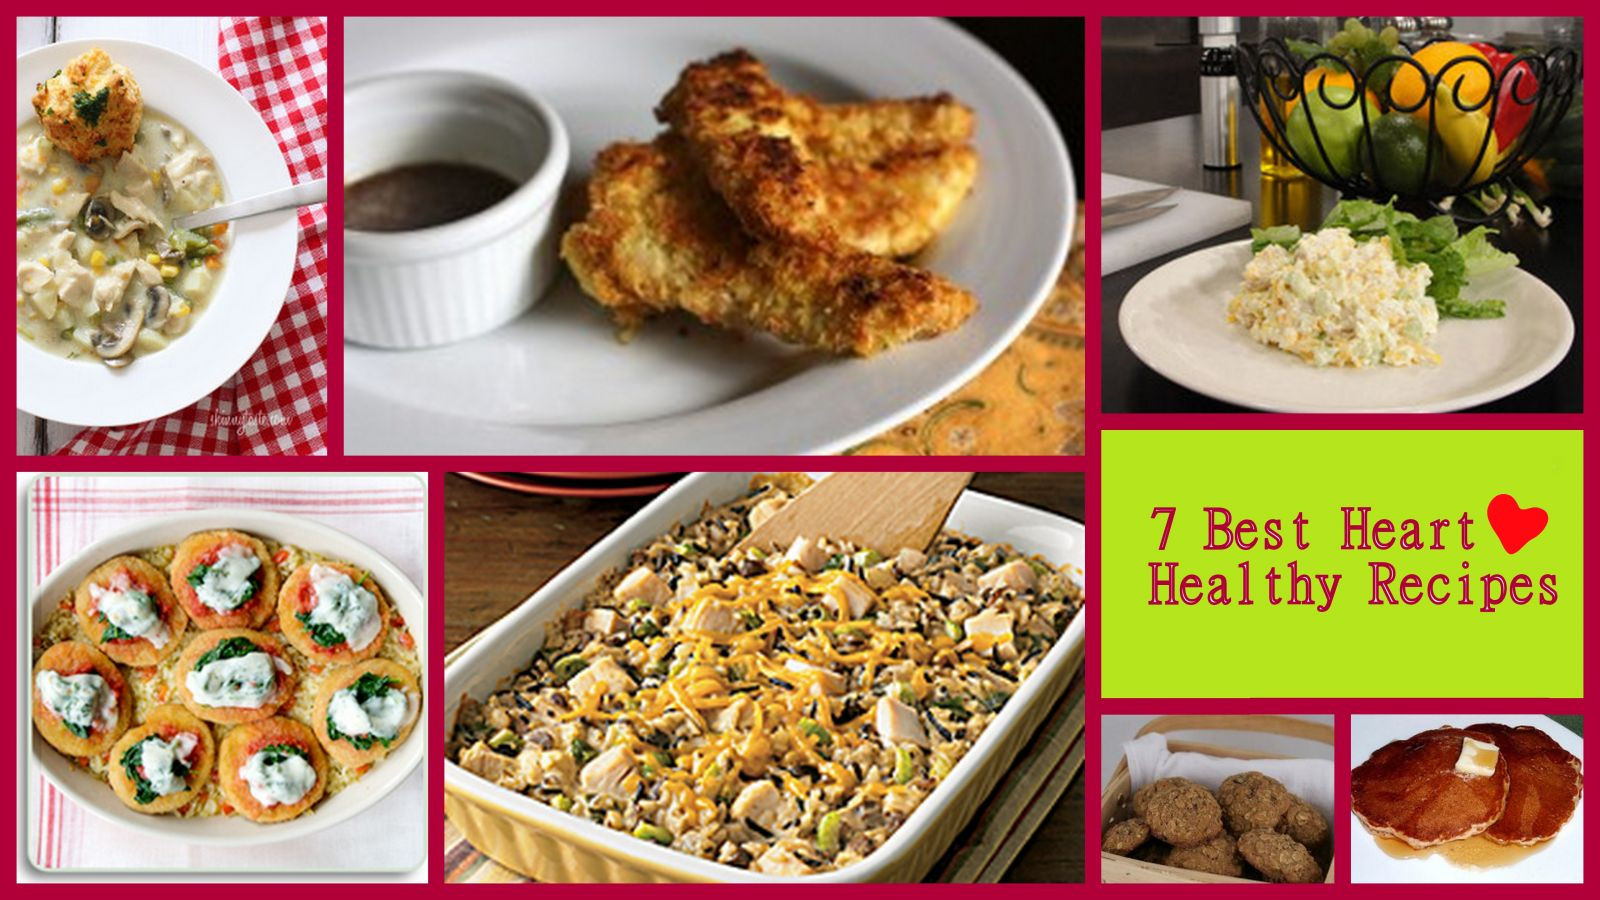 Heart Healthy Diets Recipes  7 Best Heart Healthy Recipes